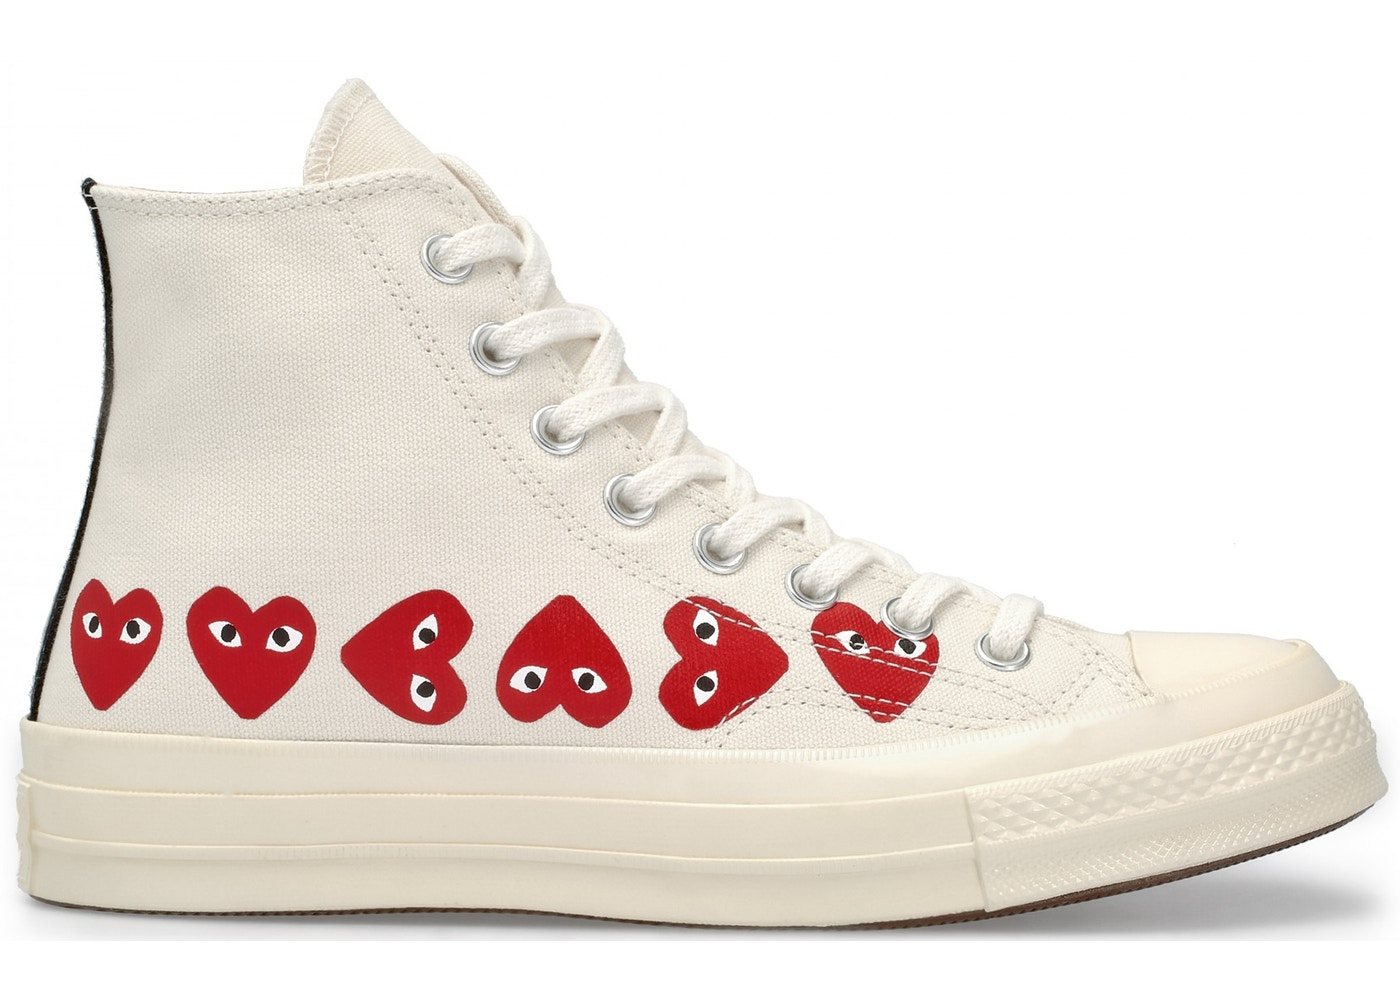 Converse Star 70s Garcons All Heart White Hi Play Des Taylor Comme Chuck Multi f6gb7y